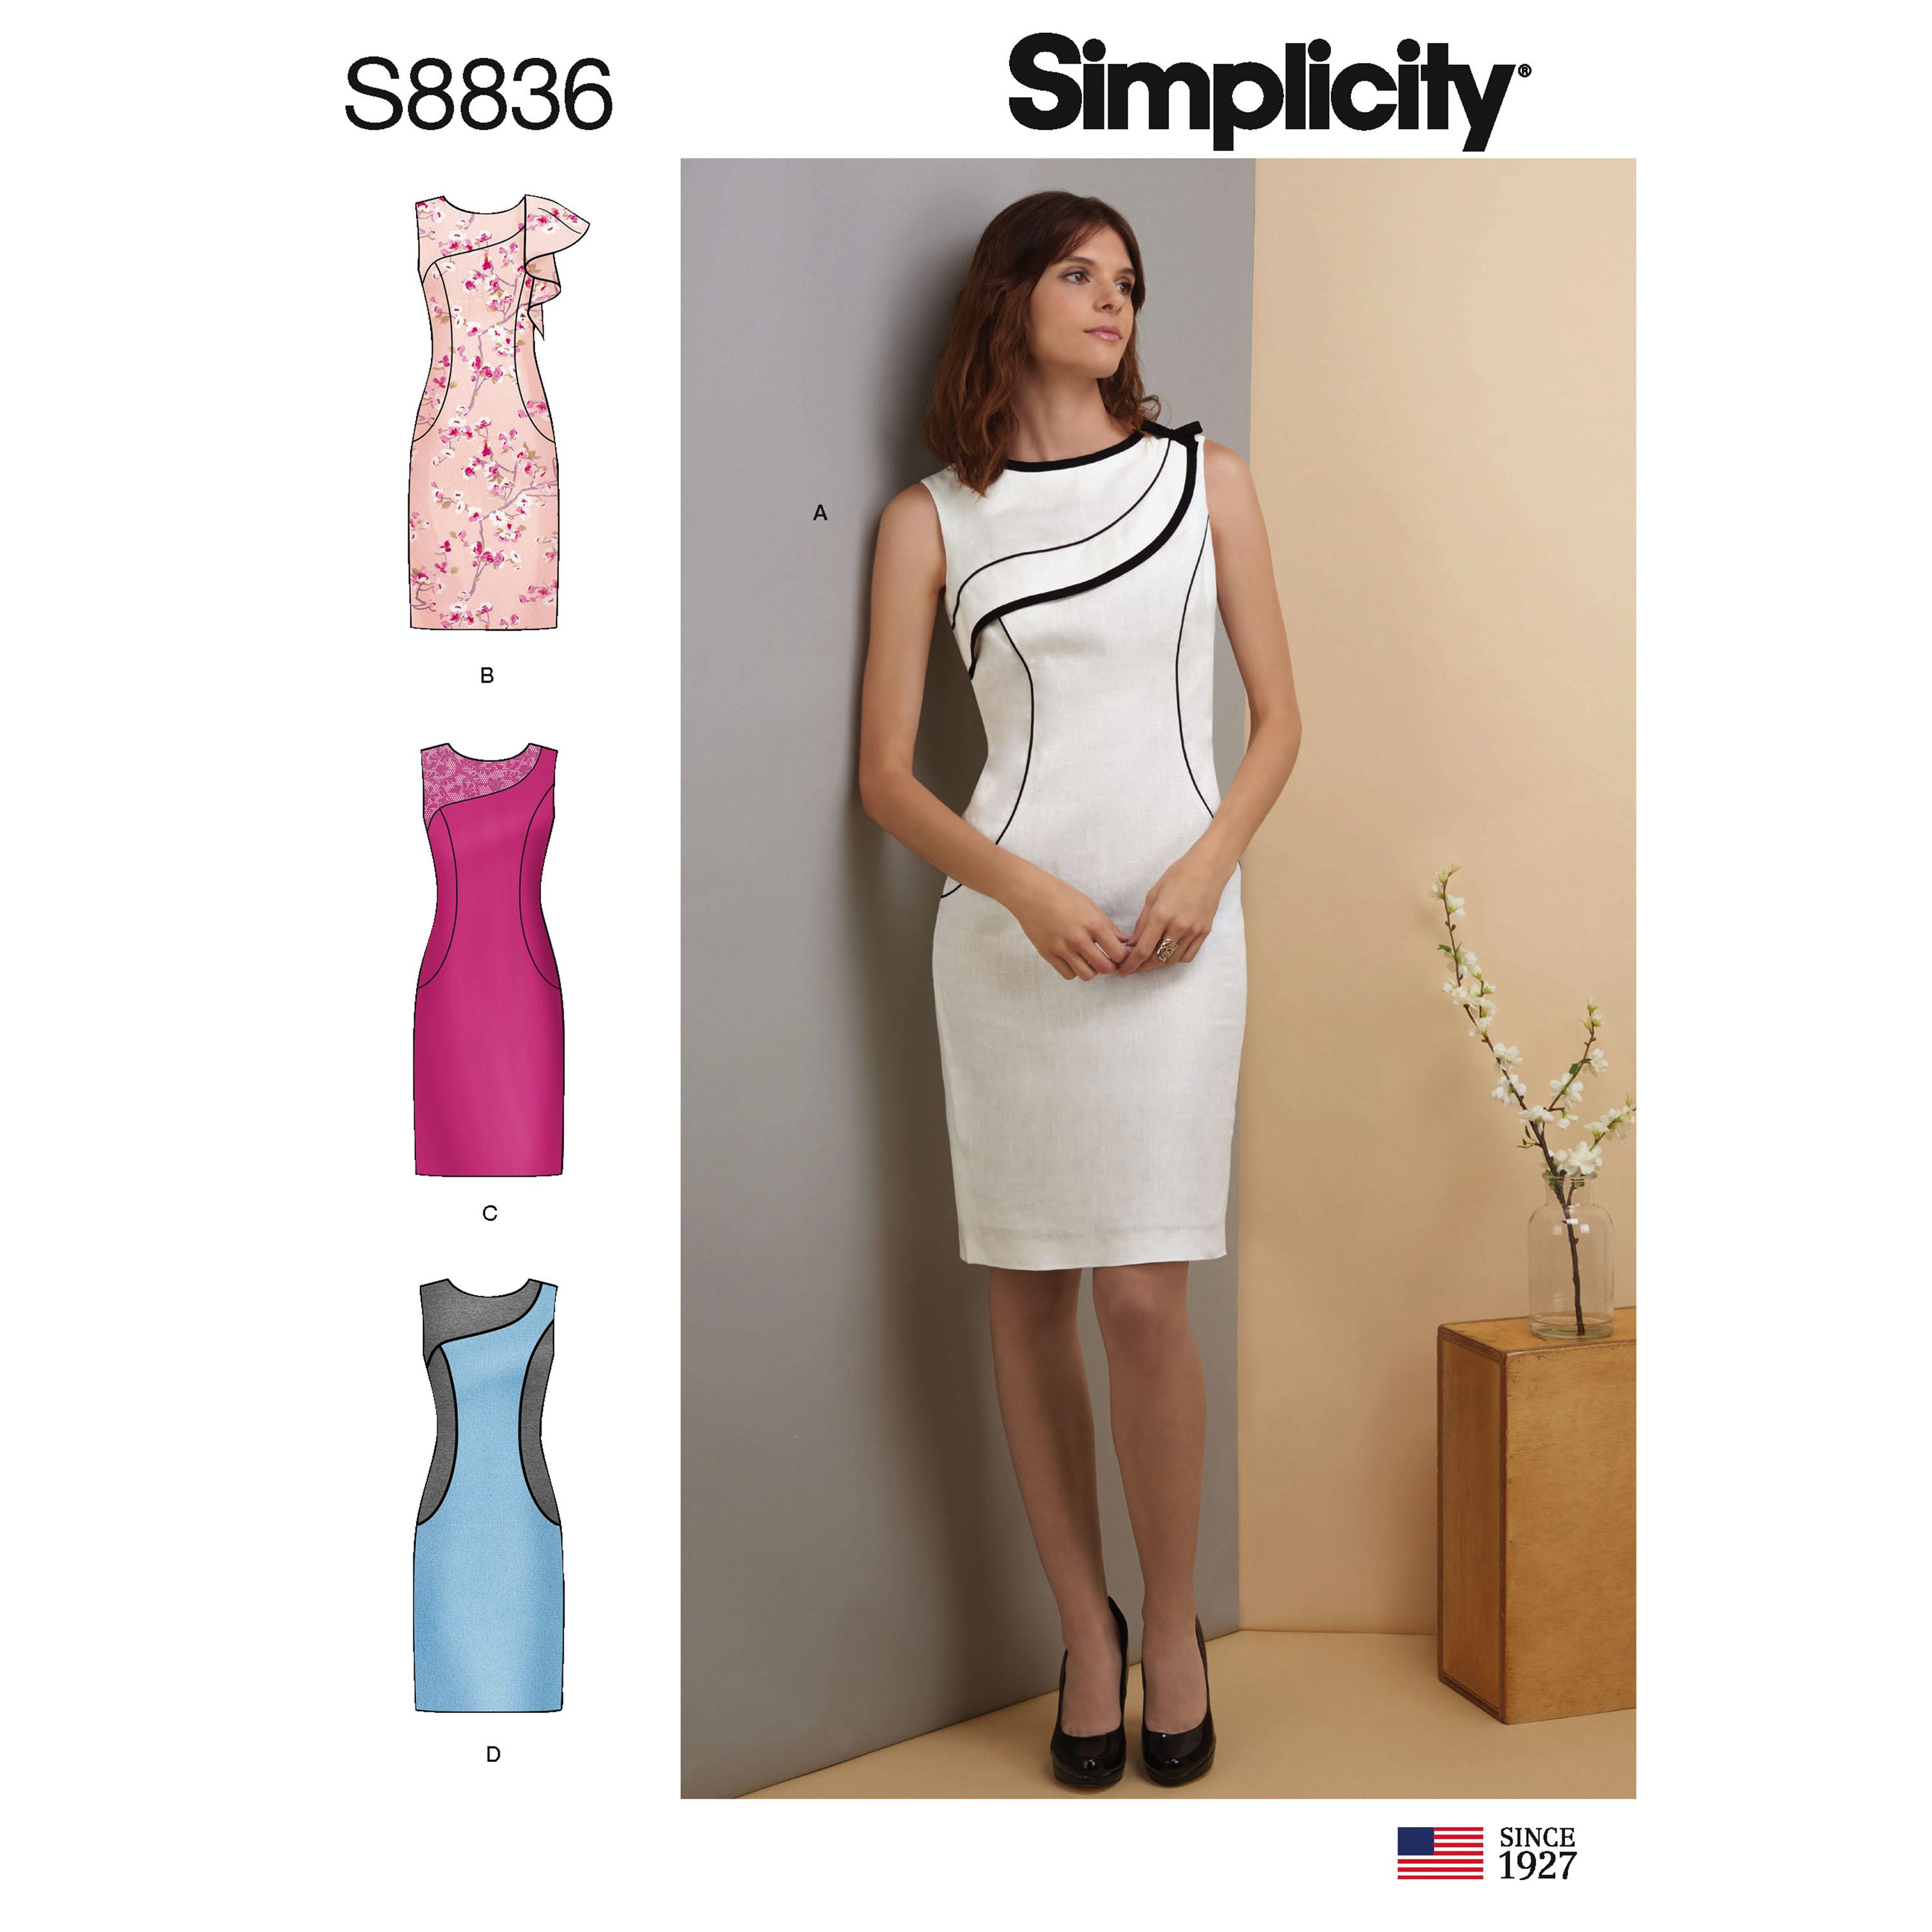 Simplicity S8836 Misses'/ Miss Petite Dress